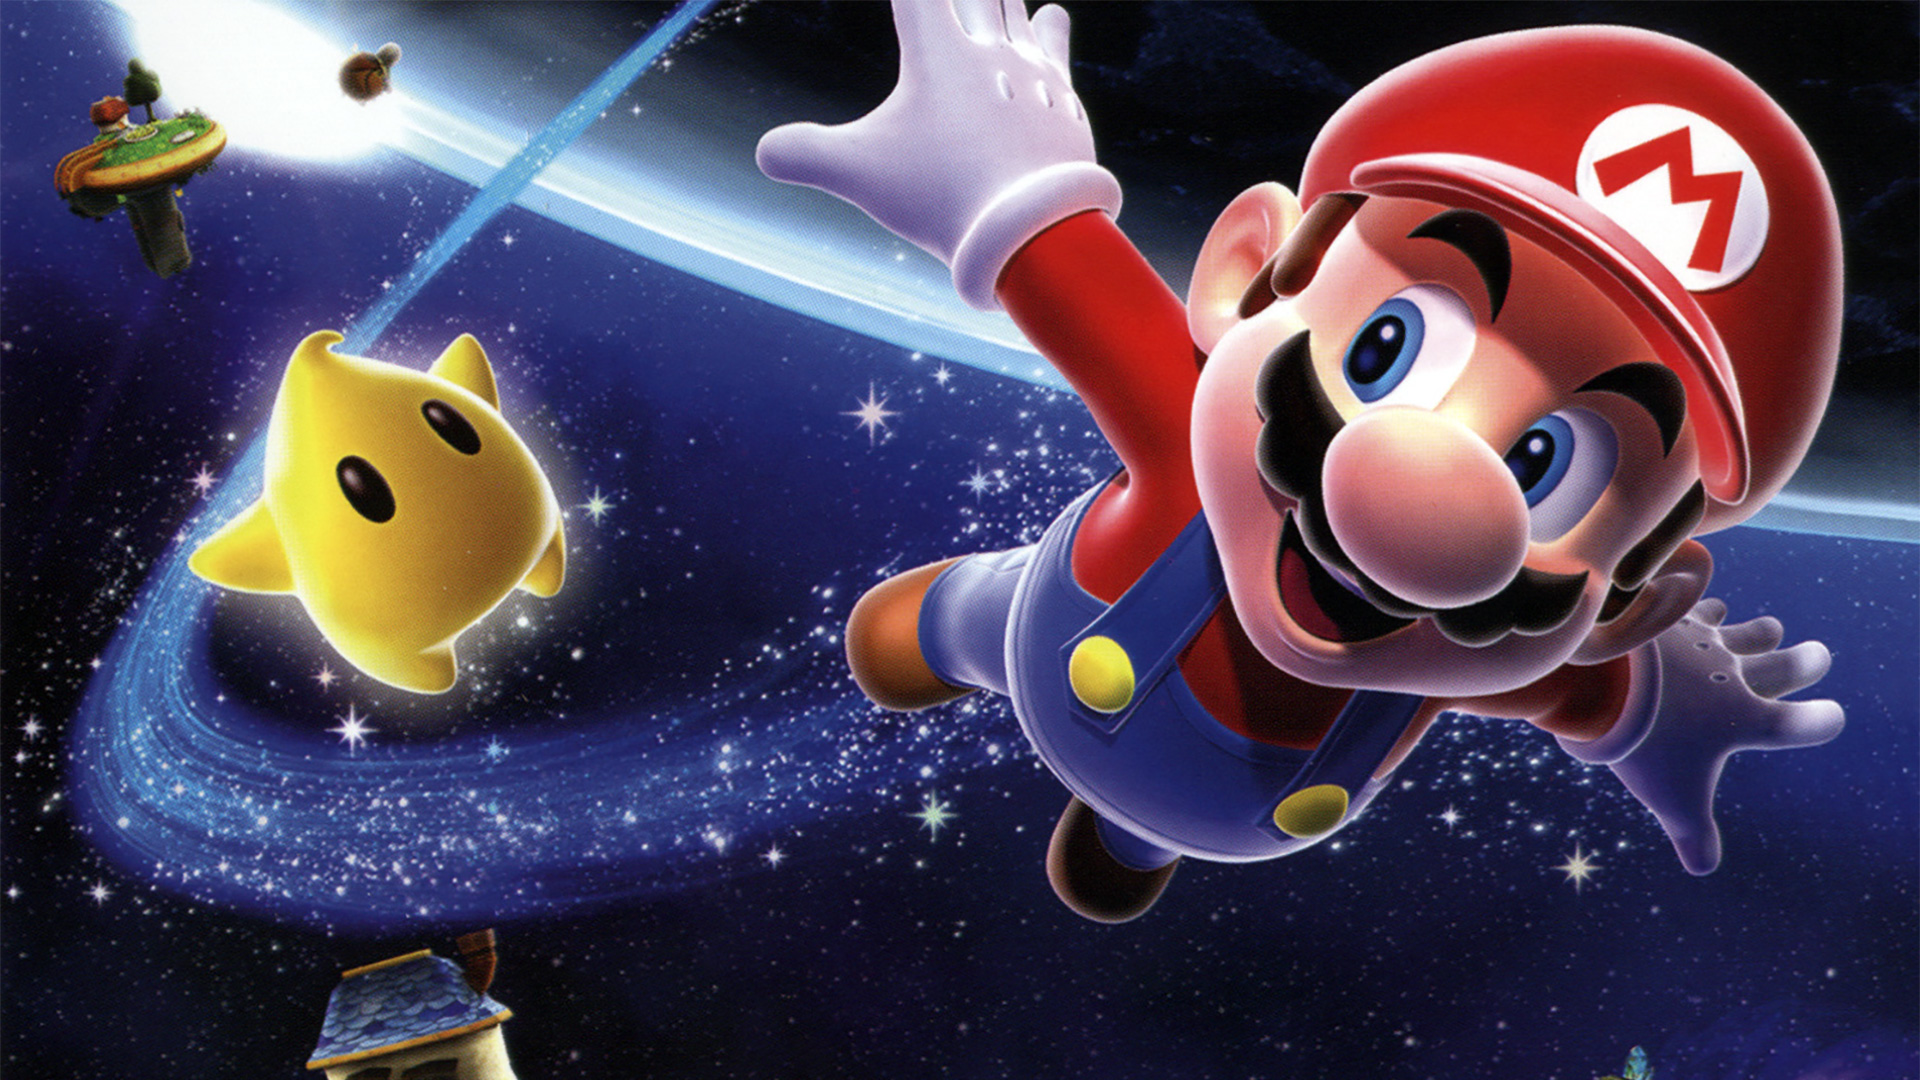 Nintendo Switch is reportedly getting 3D Mario remasters and a new Paper Mario screenshot